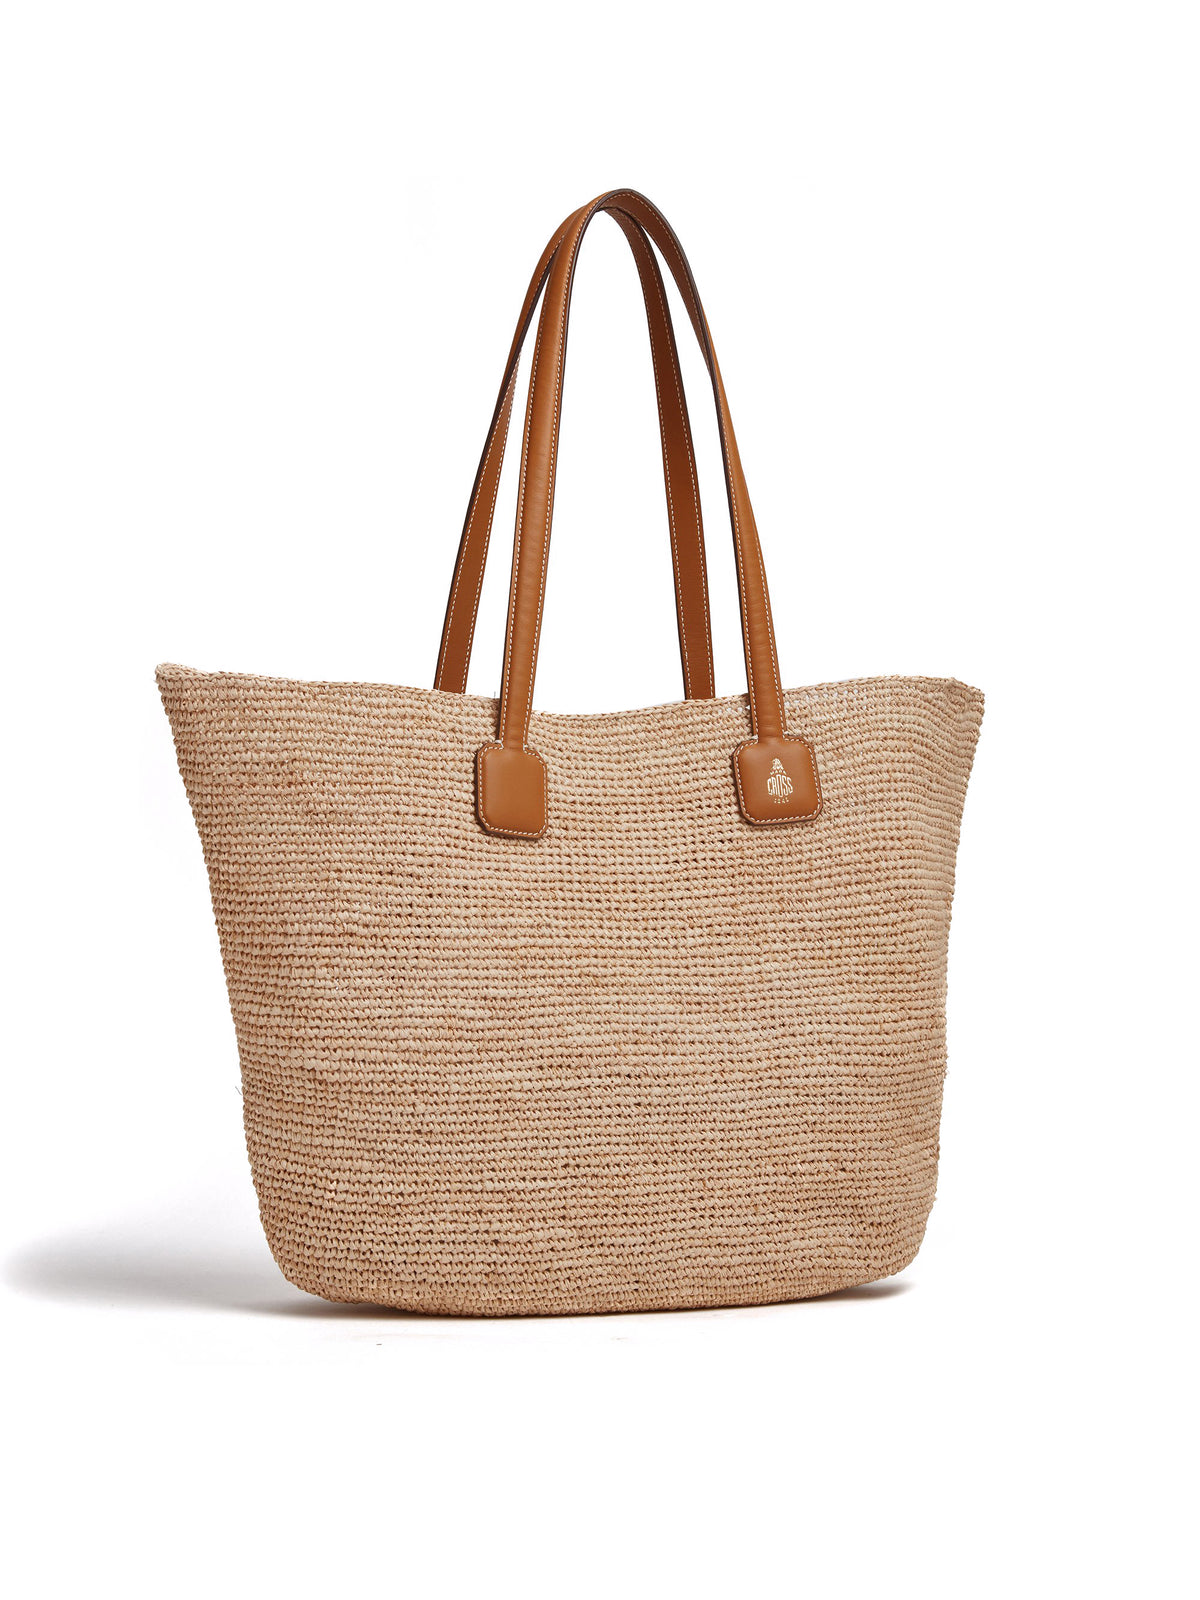 Mark Cross Côte d'Azur Raffia & Leather Tote Bag Soft Calf Luggage / Natural Raffia Side